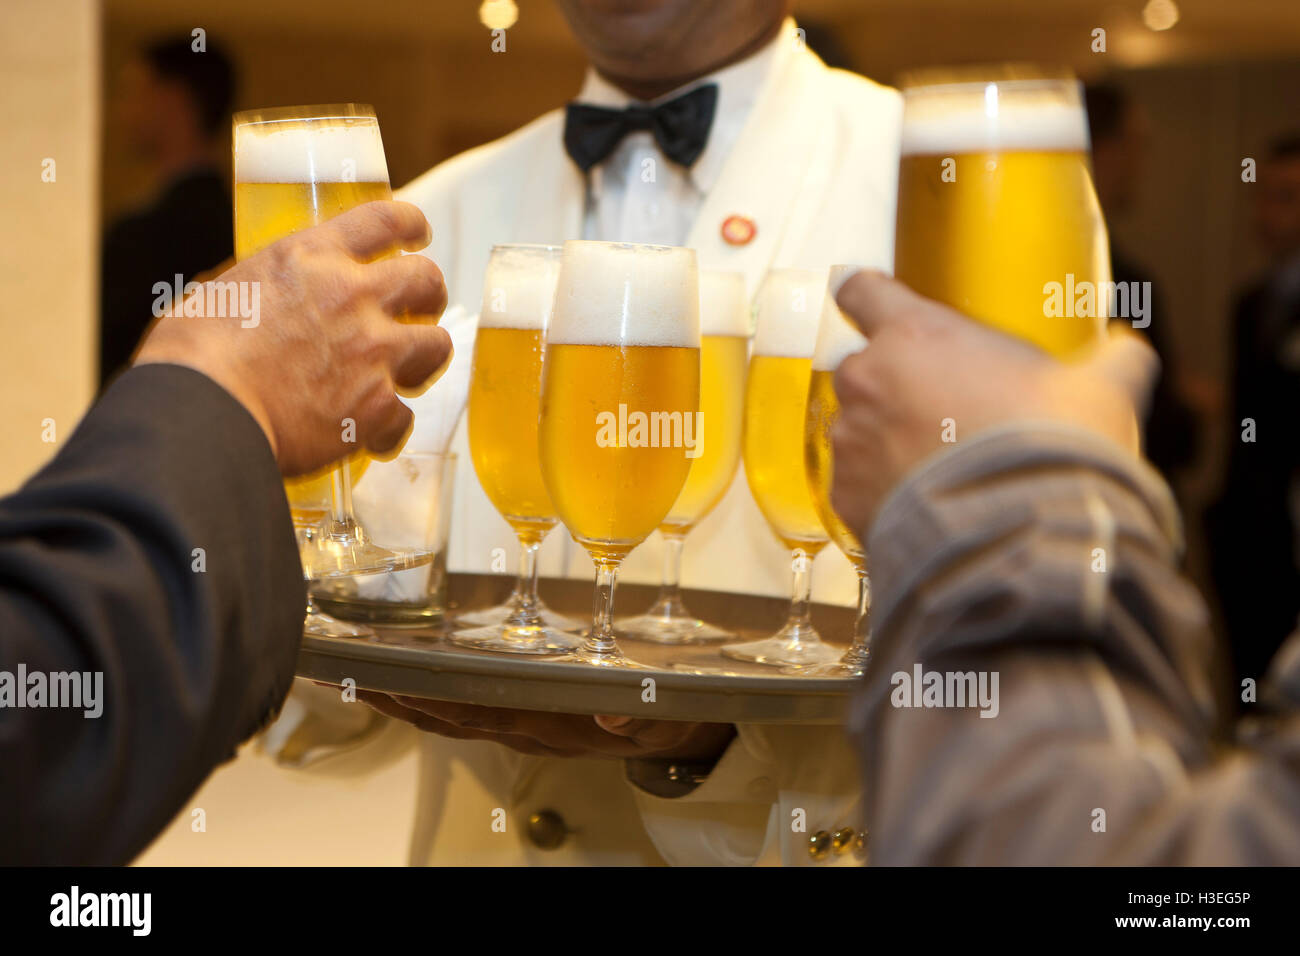 Happy hour, waiter serving beer to business people at office party. - Stock Image